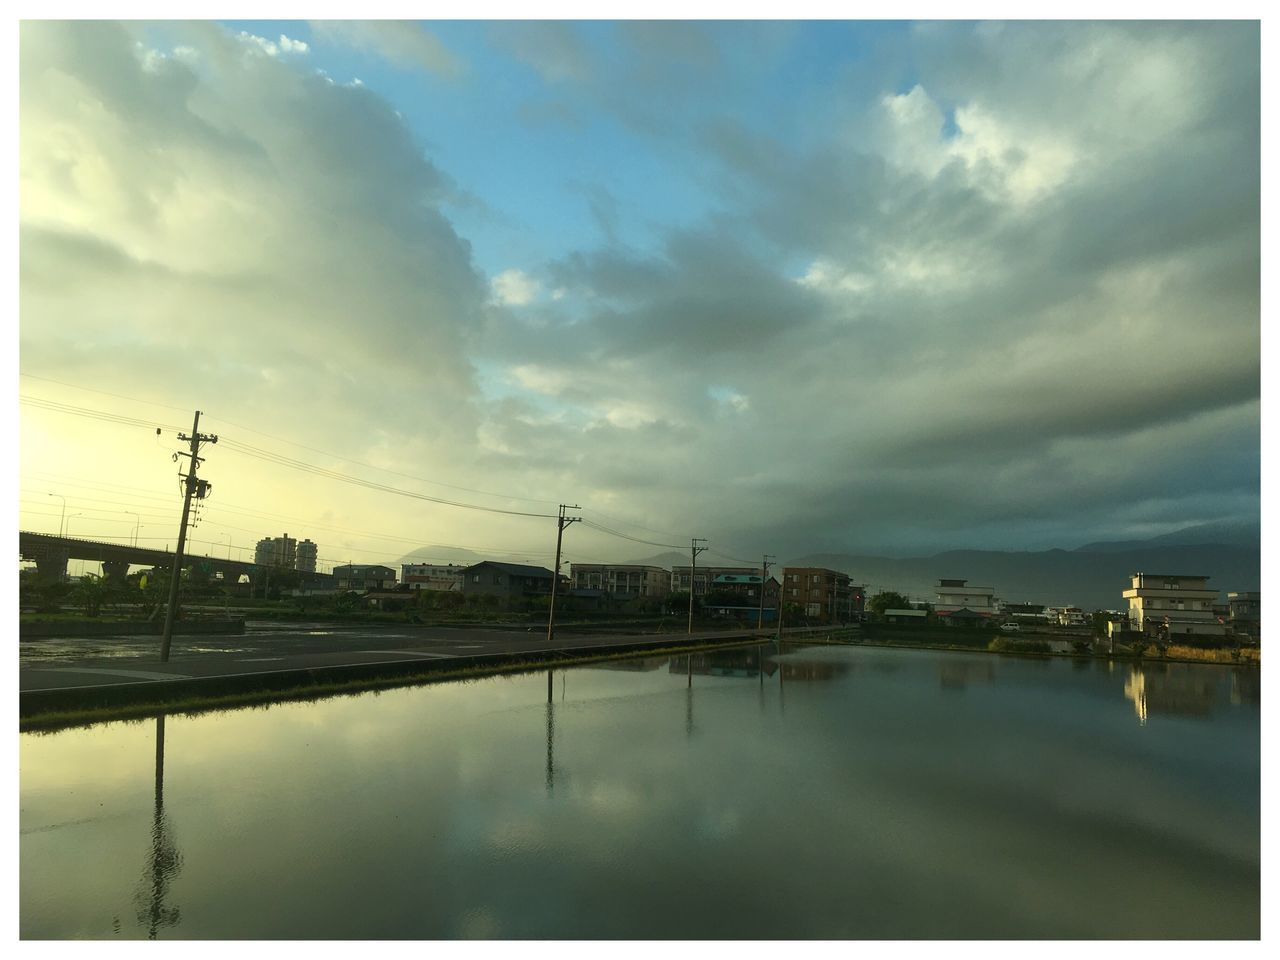 sky, reflection, water, cloud - sky, built structure, no people, architecture, building exterior, outdoors, waterfront, city, industry, day, electricity pylon, nature